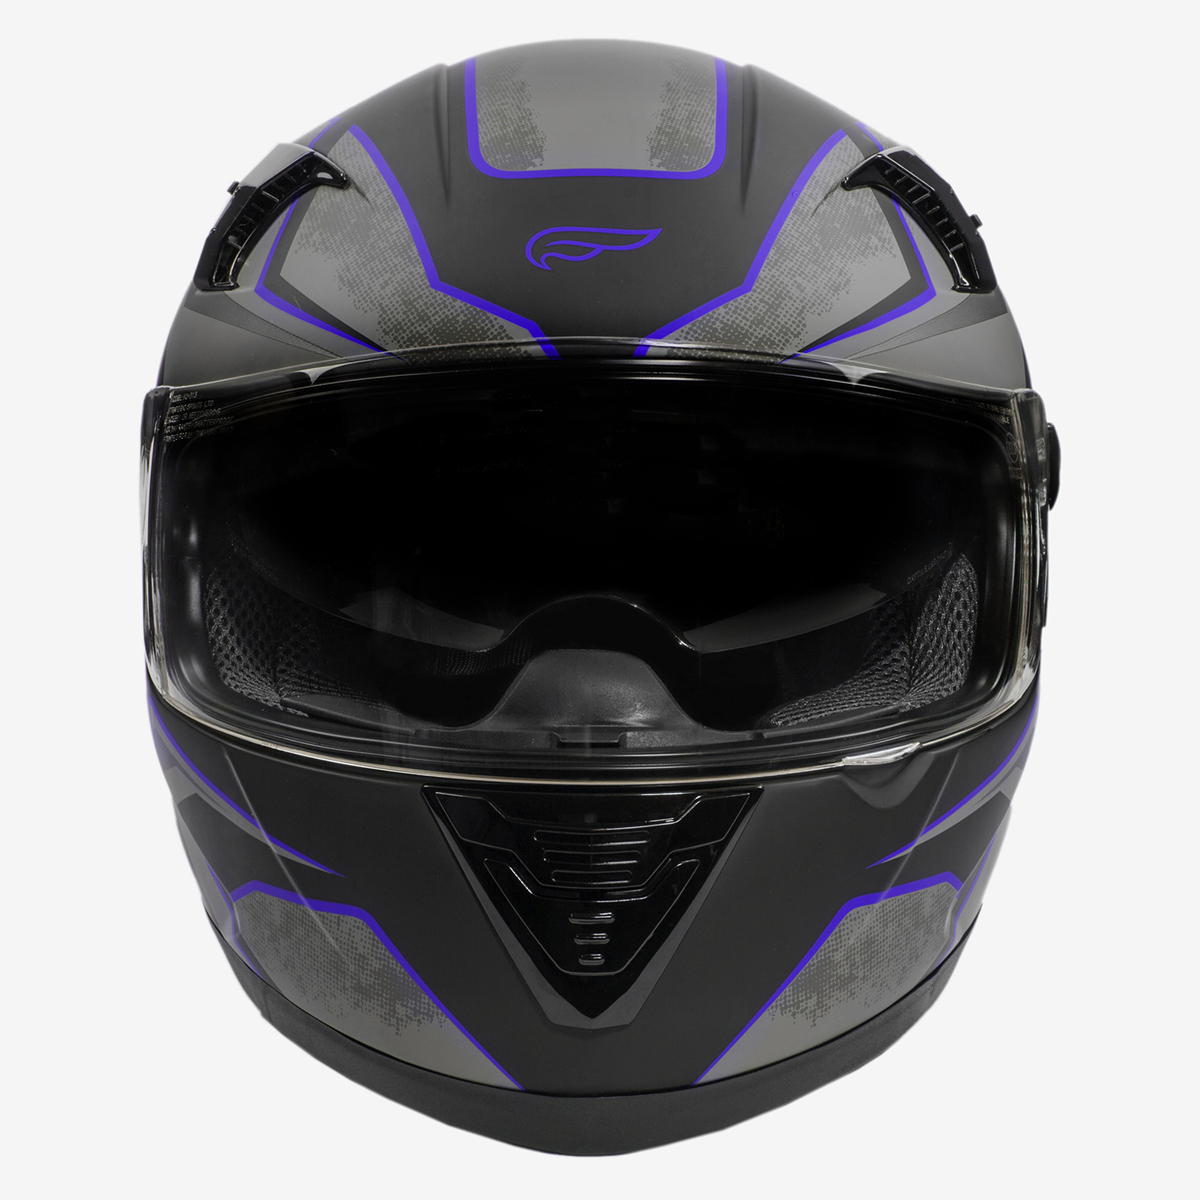 Fulmer-Adult-Full-Face-Motorcycle-Helmet-151-Pulse-DOT-Approved-Street-Bike thumbnail 8